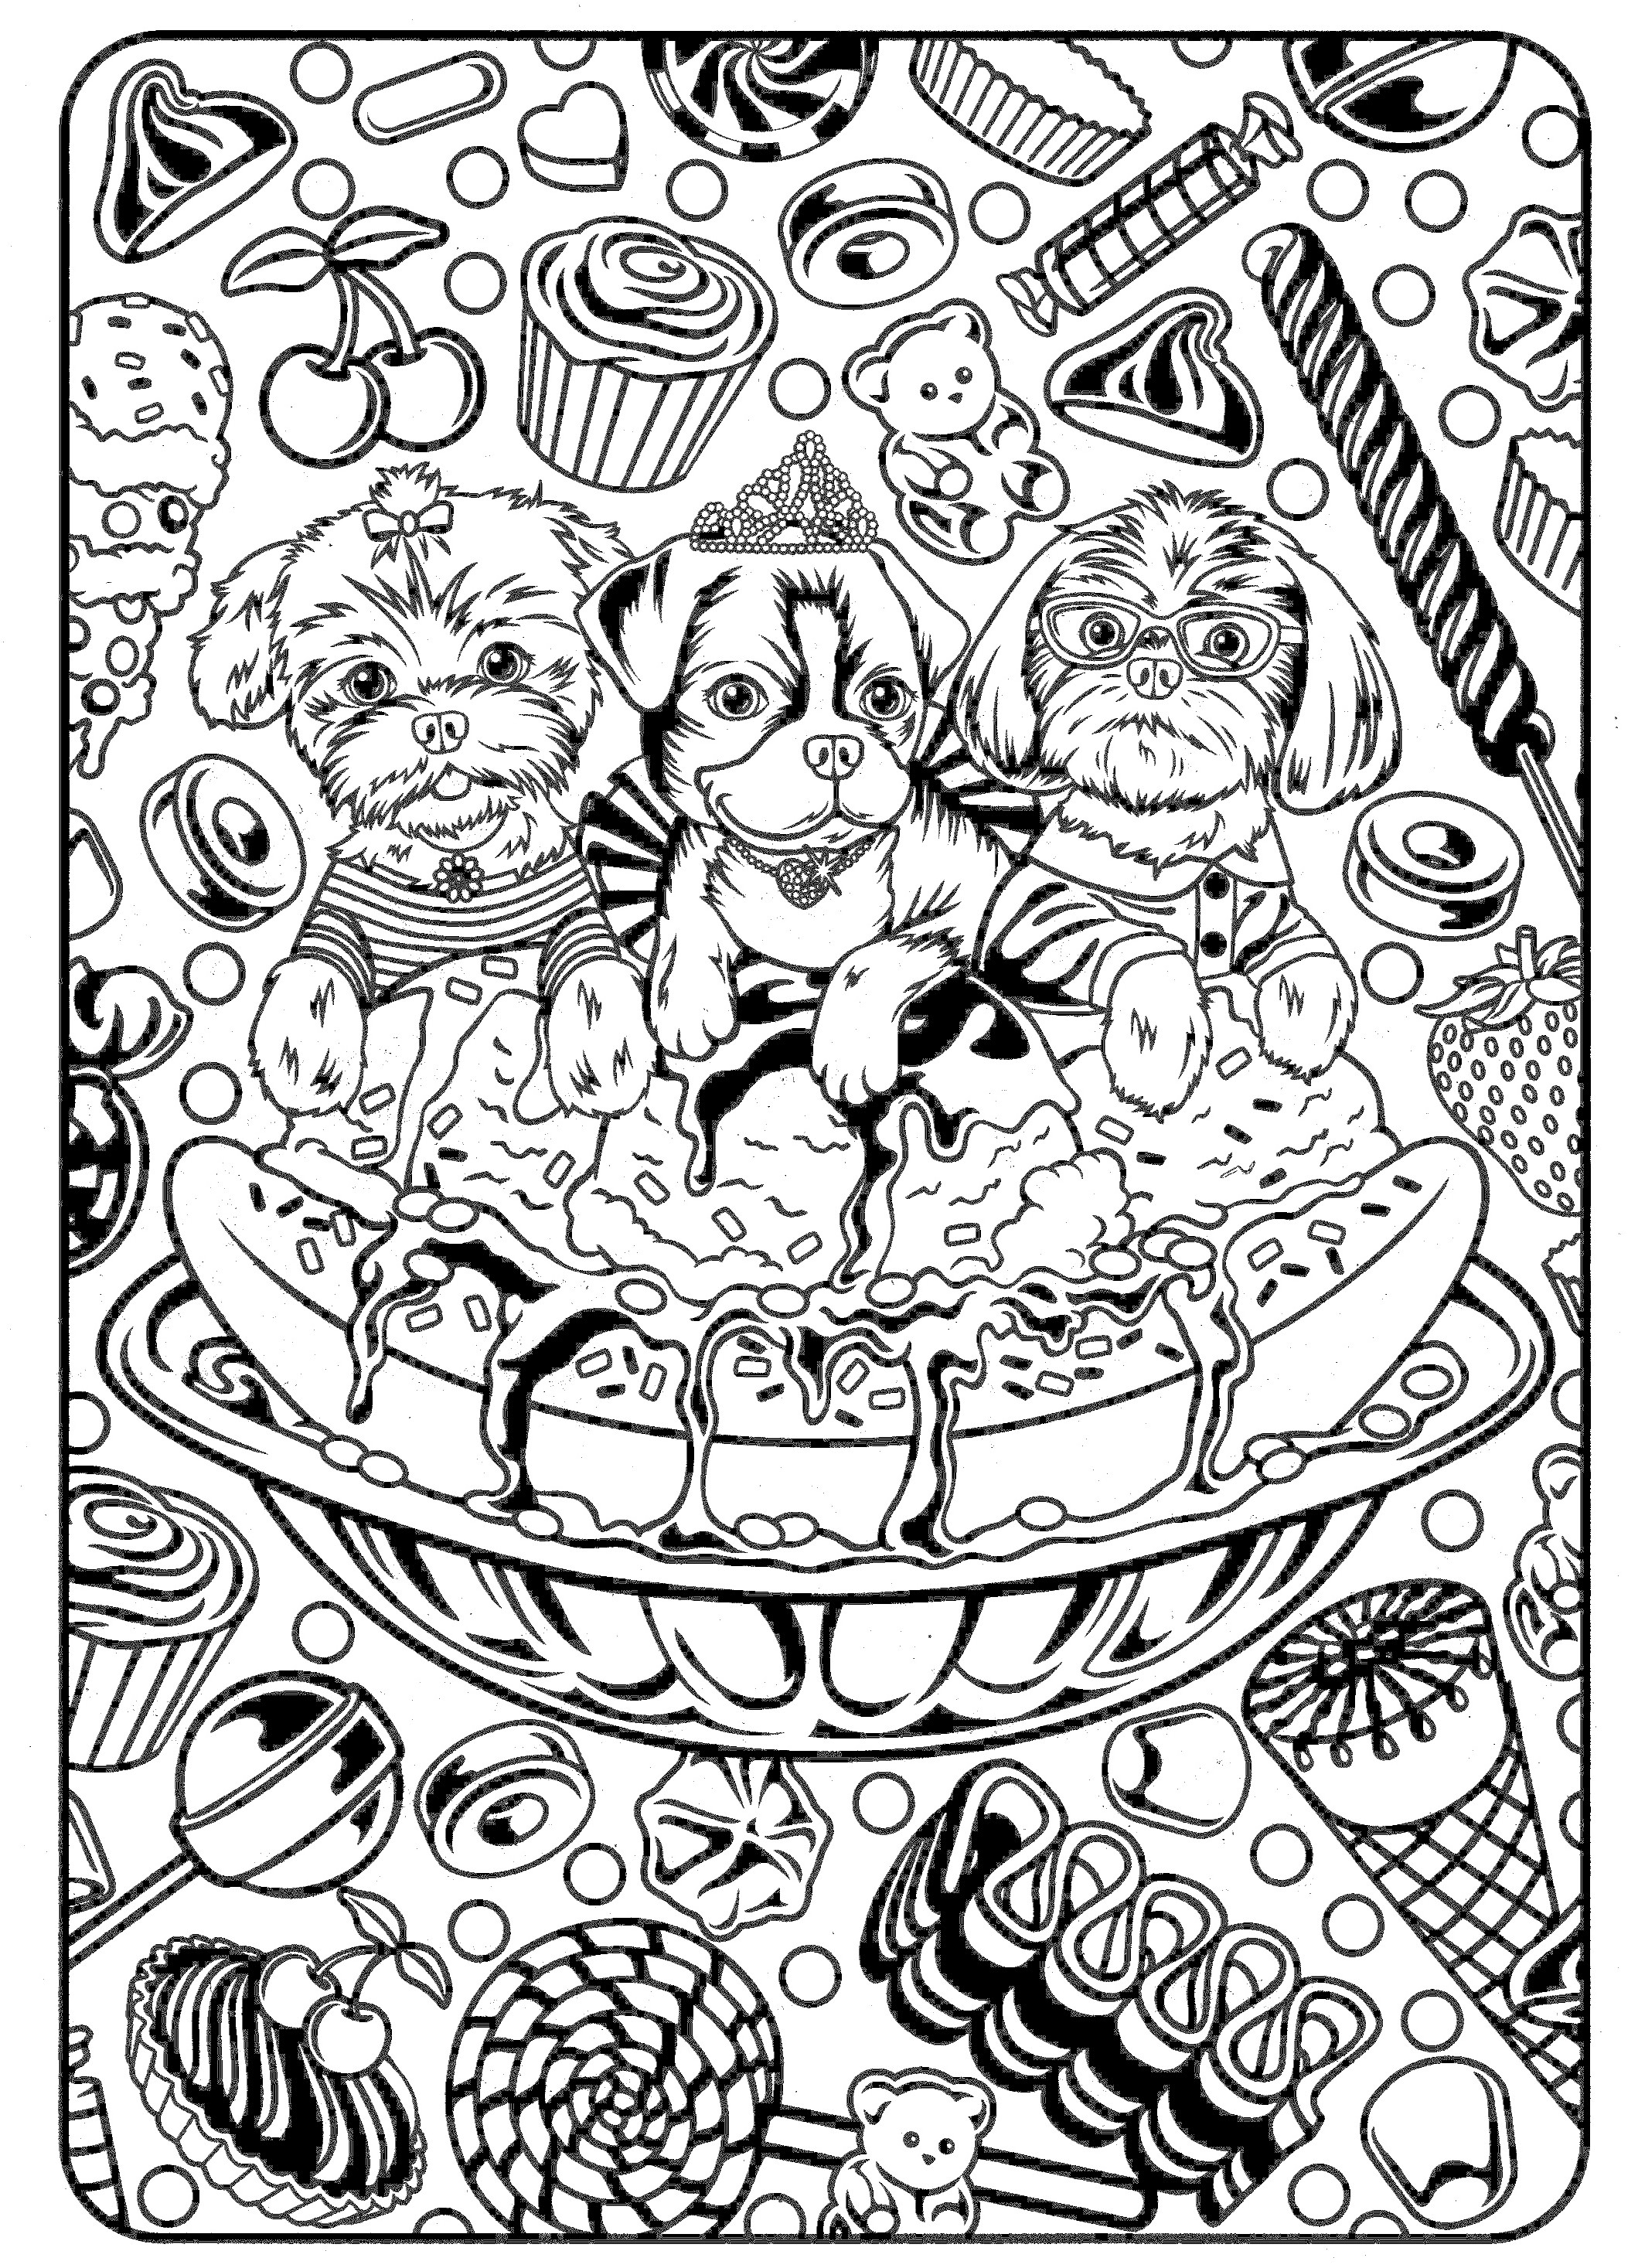 coloring pages printables cute coloring pages best coloring pages for kids coloring printables pages